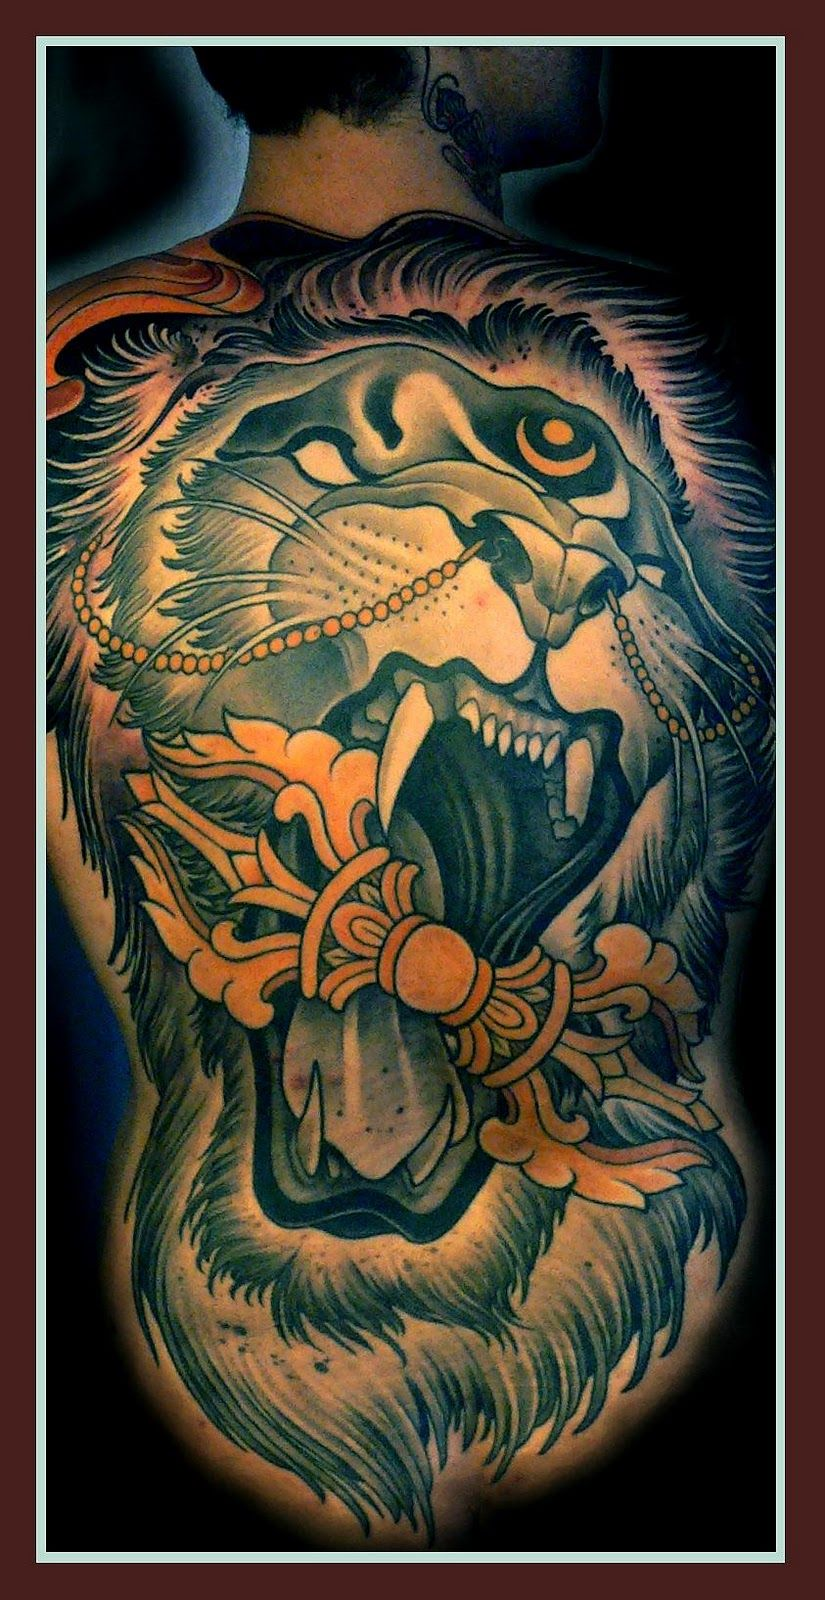 Full back shouting lion tattoo with mouth wide open